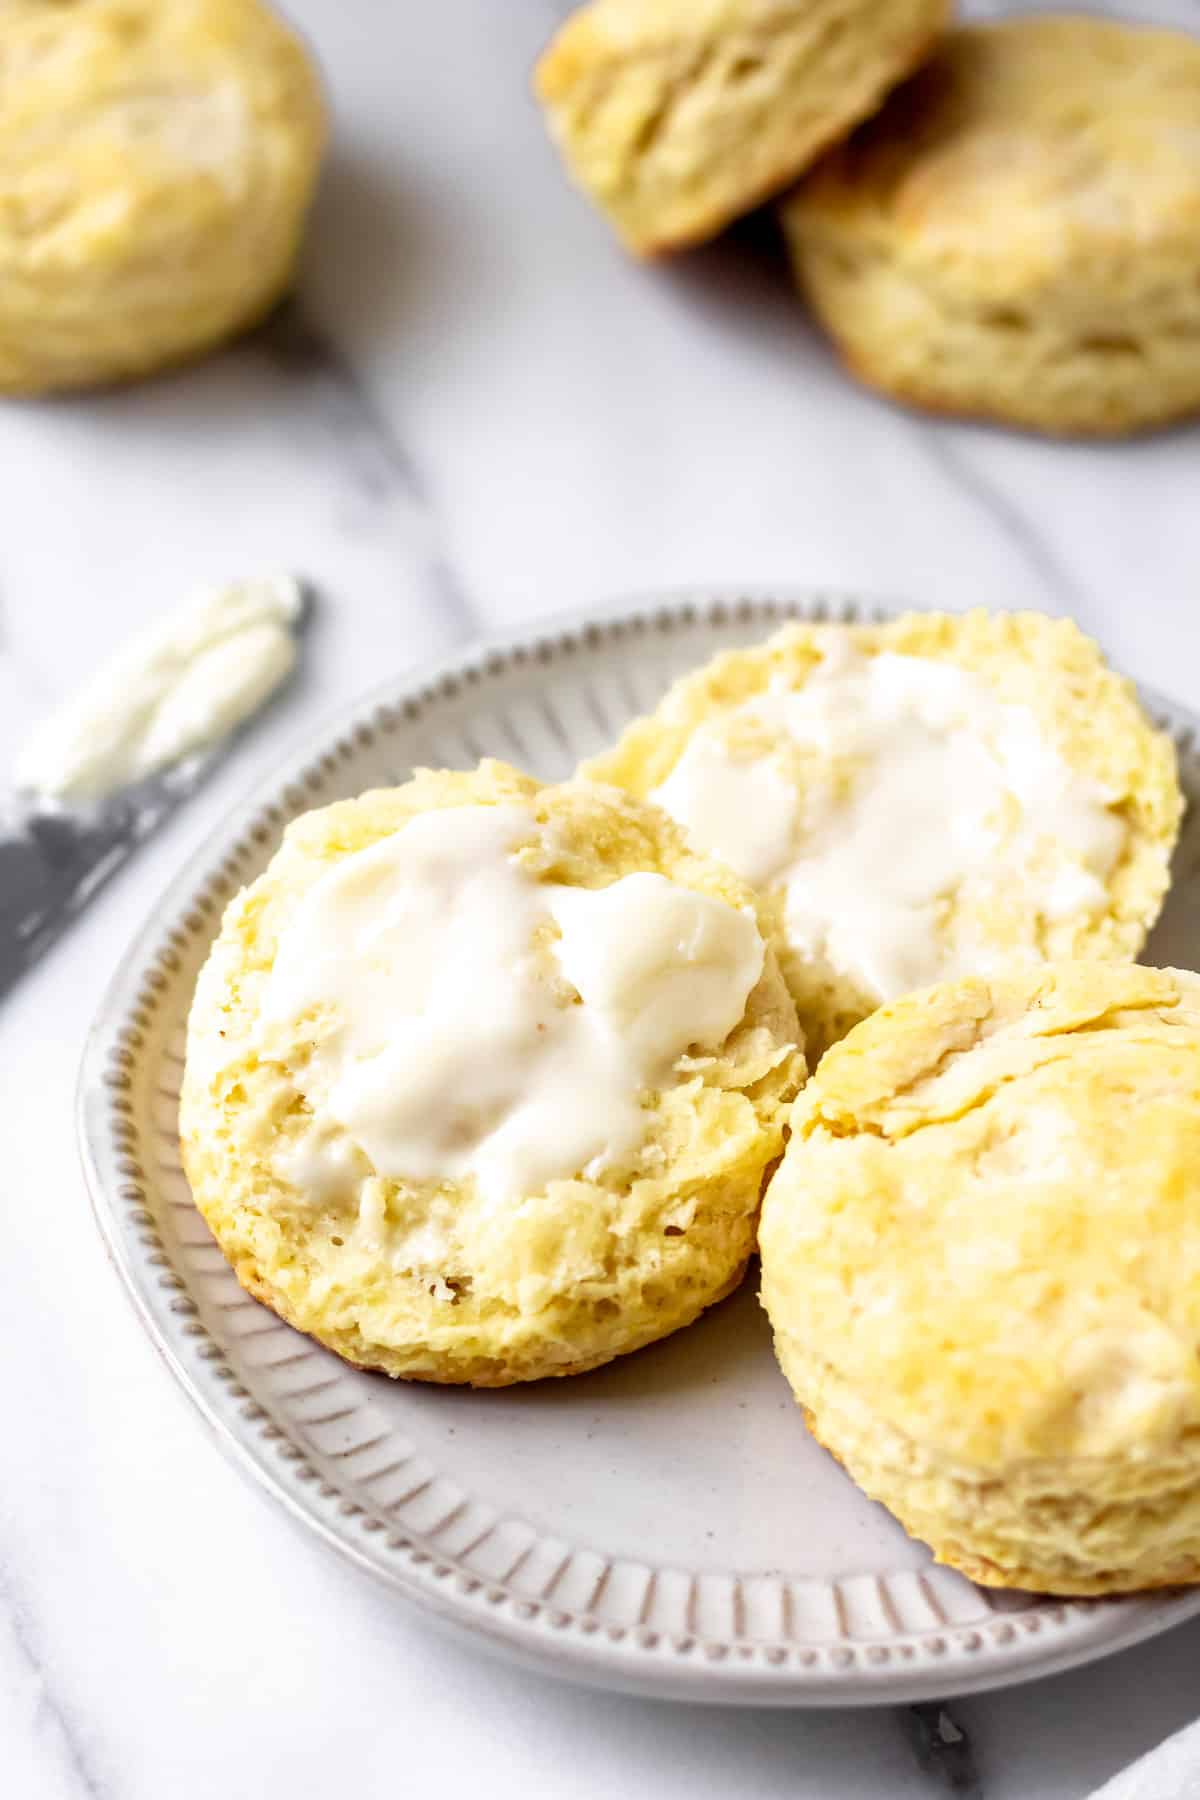 homemade country biscuits with one cut open and buttered on a plate with a second whole biscuit and more in the background